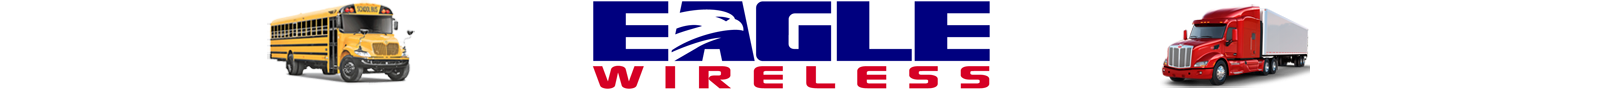 EagleWireless